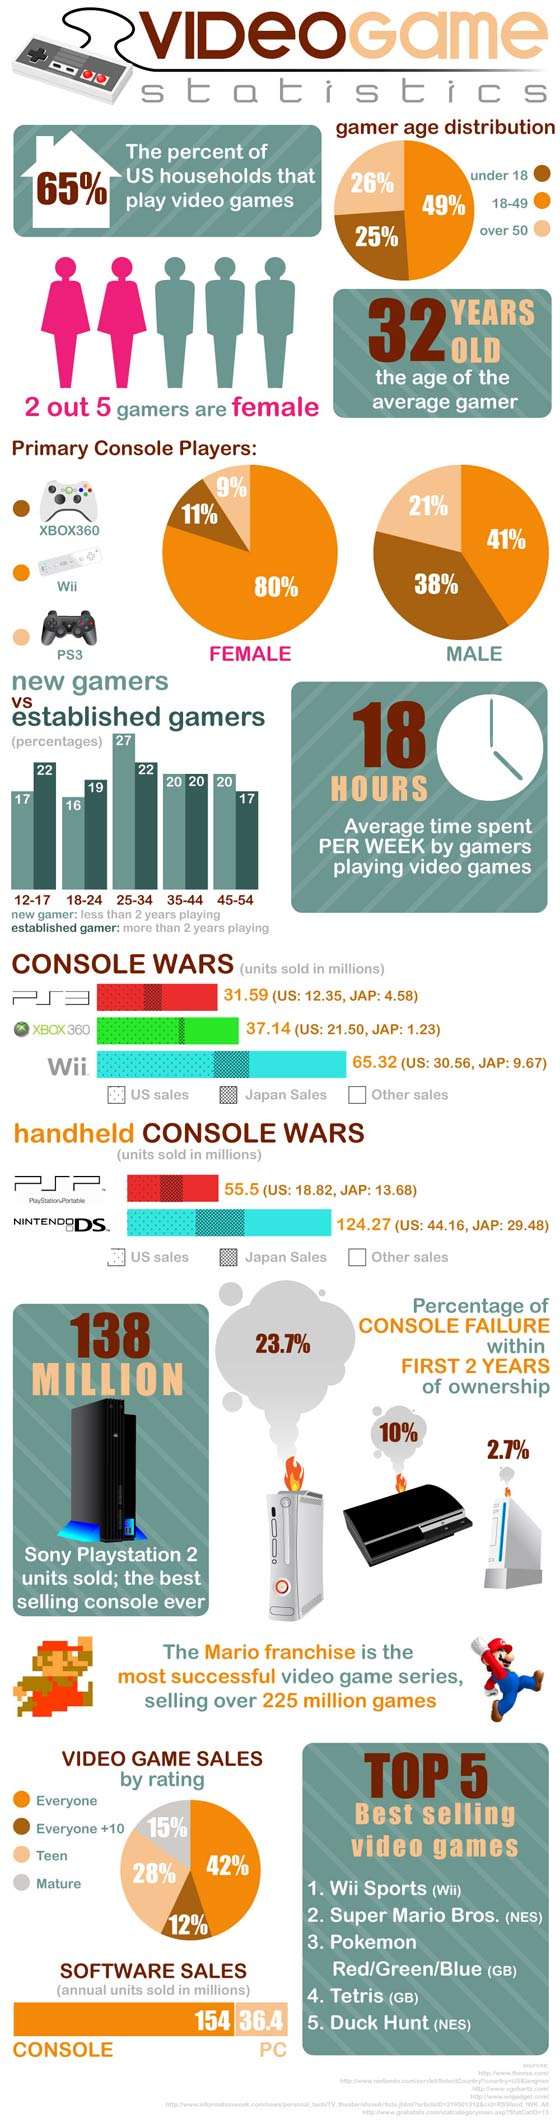 Game consoles facts served up in a neat info-graphic